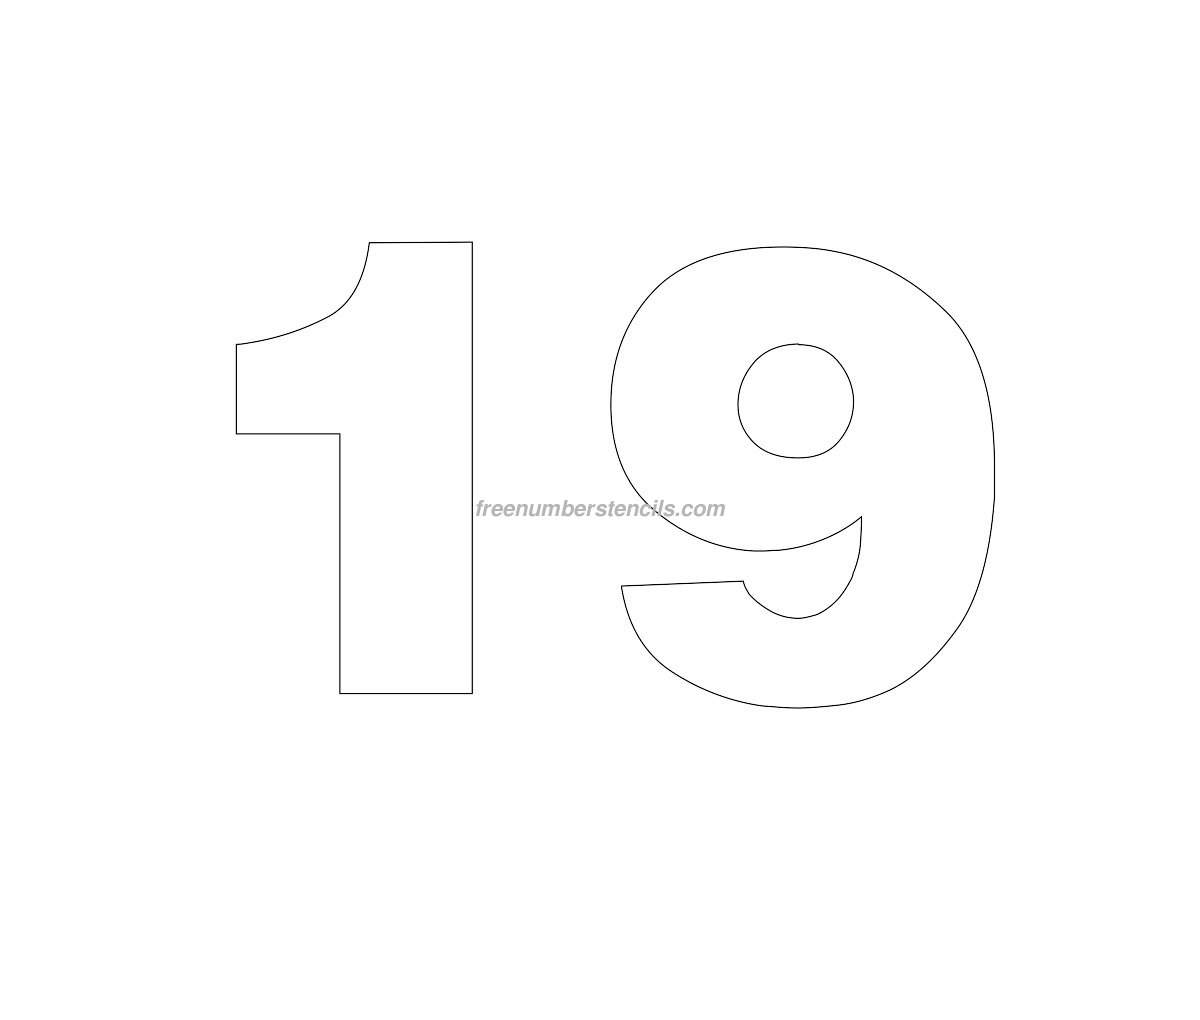 Free cut out number stencils for Helvetica letter stencils